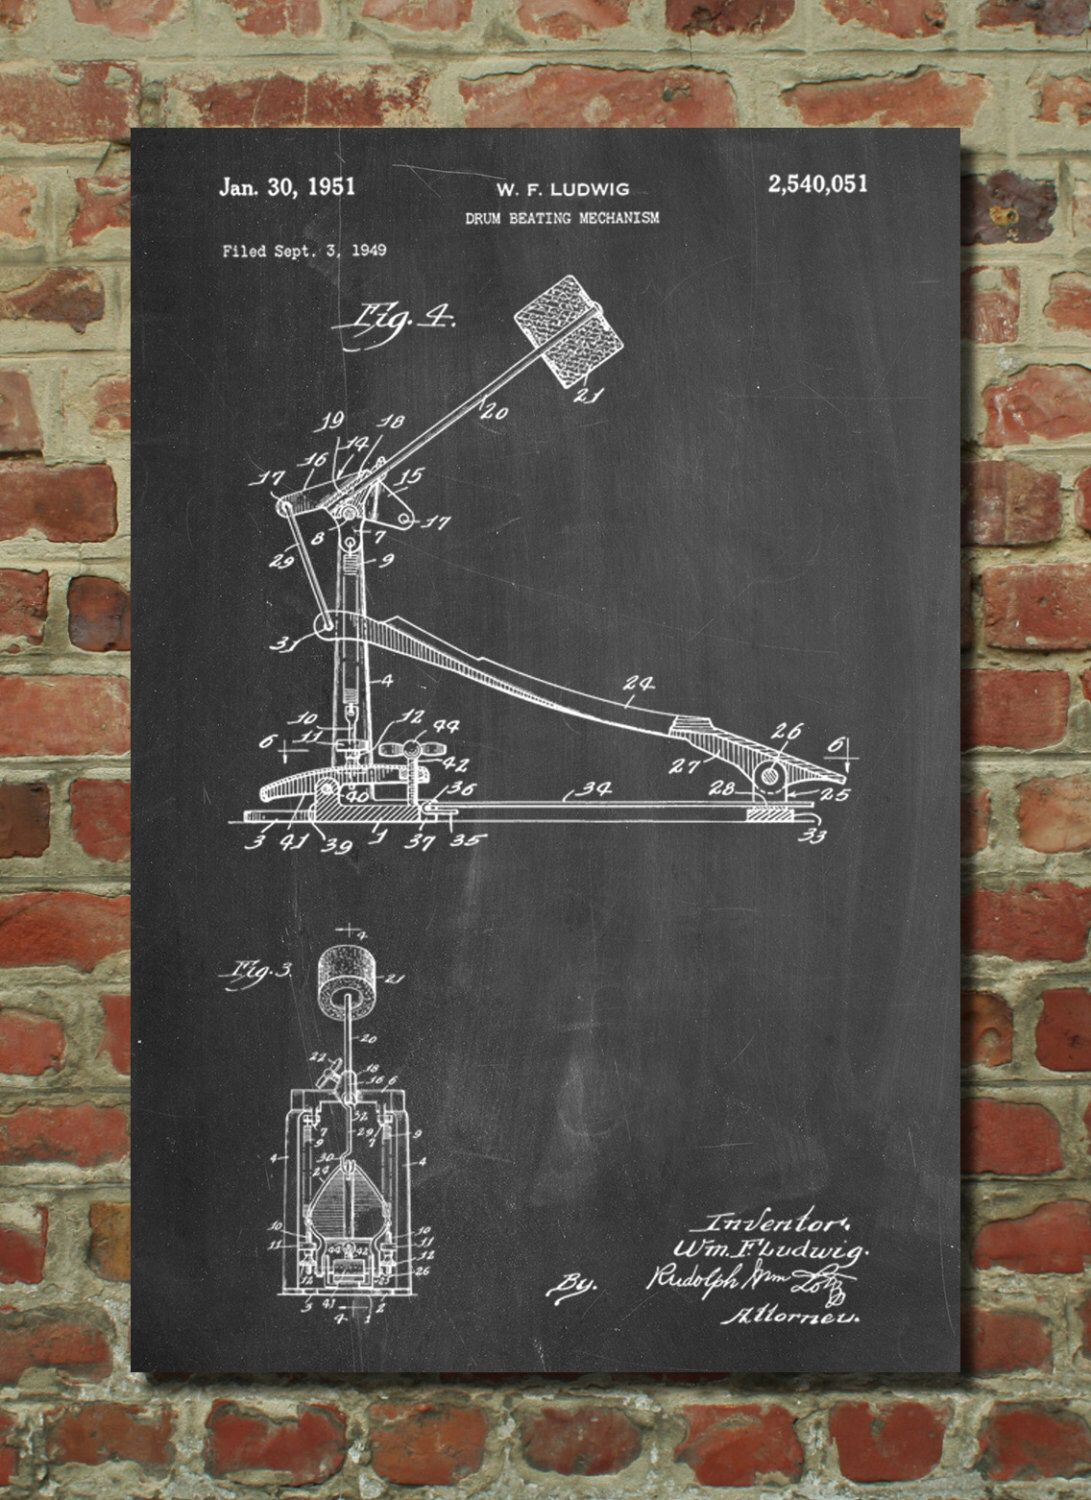 Drum kick pedal patent art print patent art blueprint patent drum kick pedal patent art print patent art blueprint patent print patentprints malvernweather Image collections